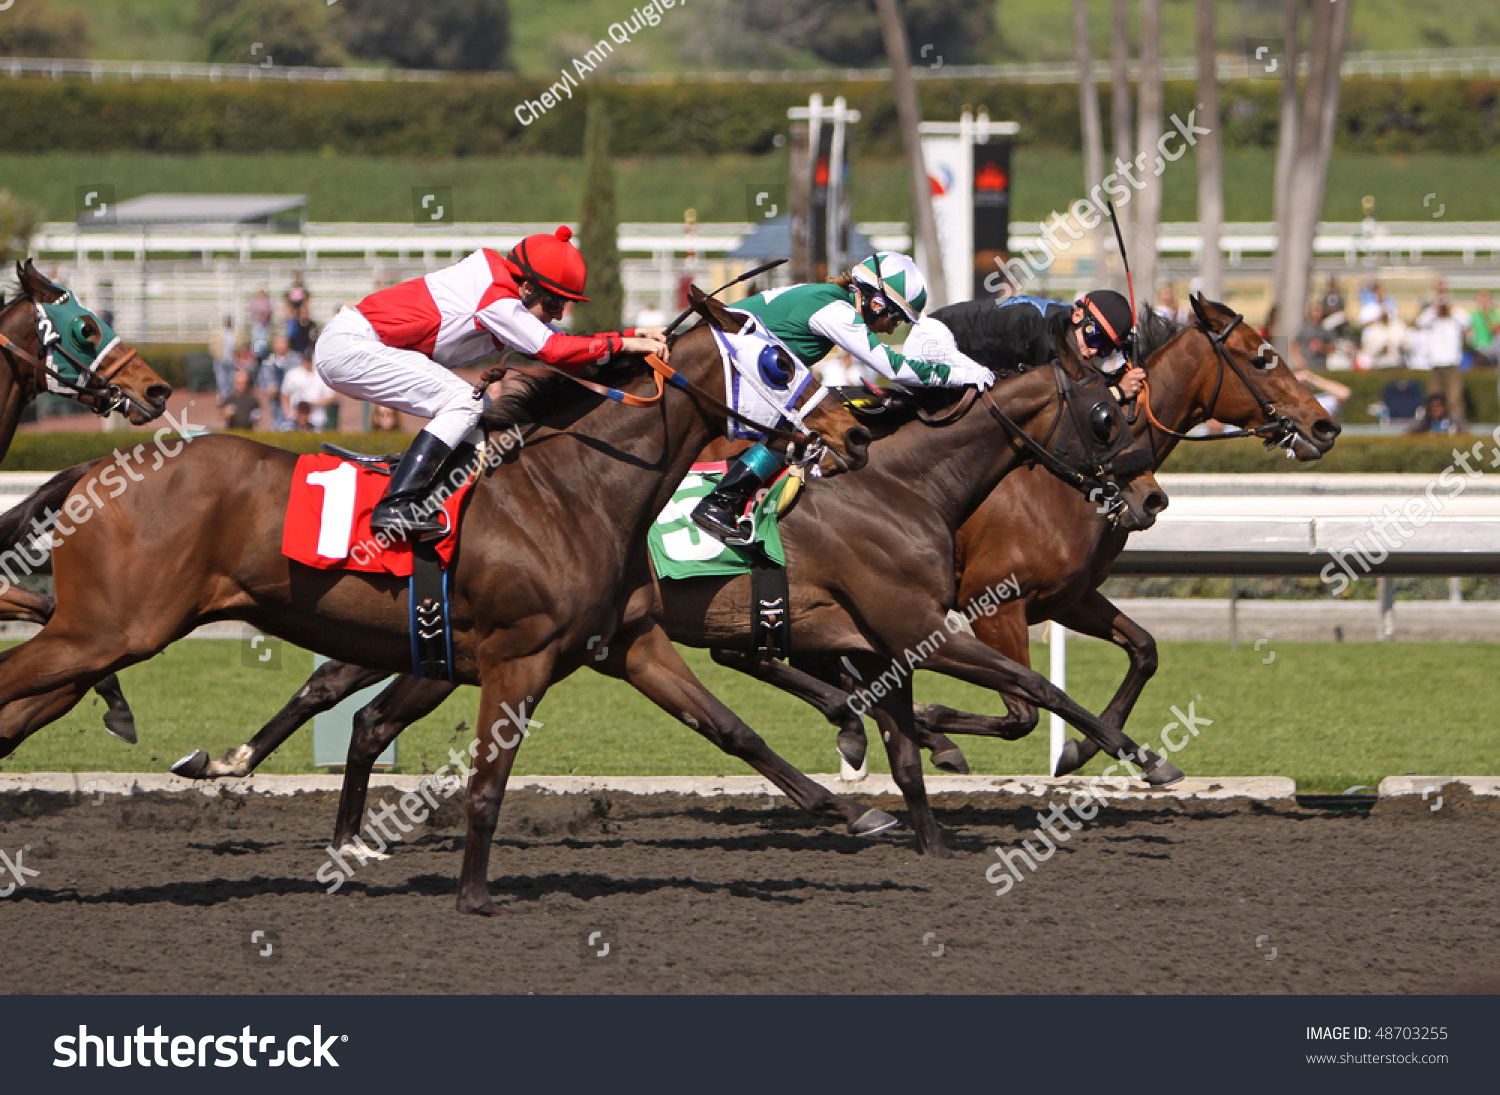 Arcadia Ca Mar 13 Jockey Michael Stock Photo 48703255